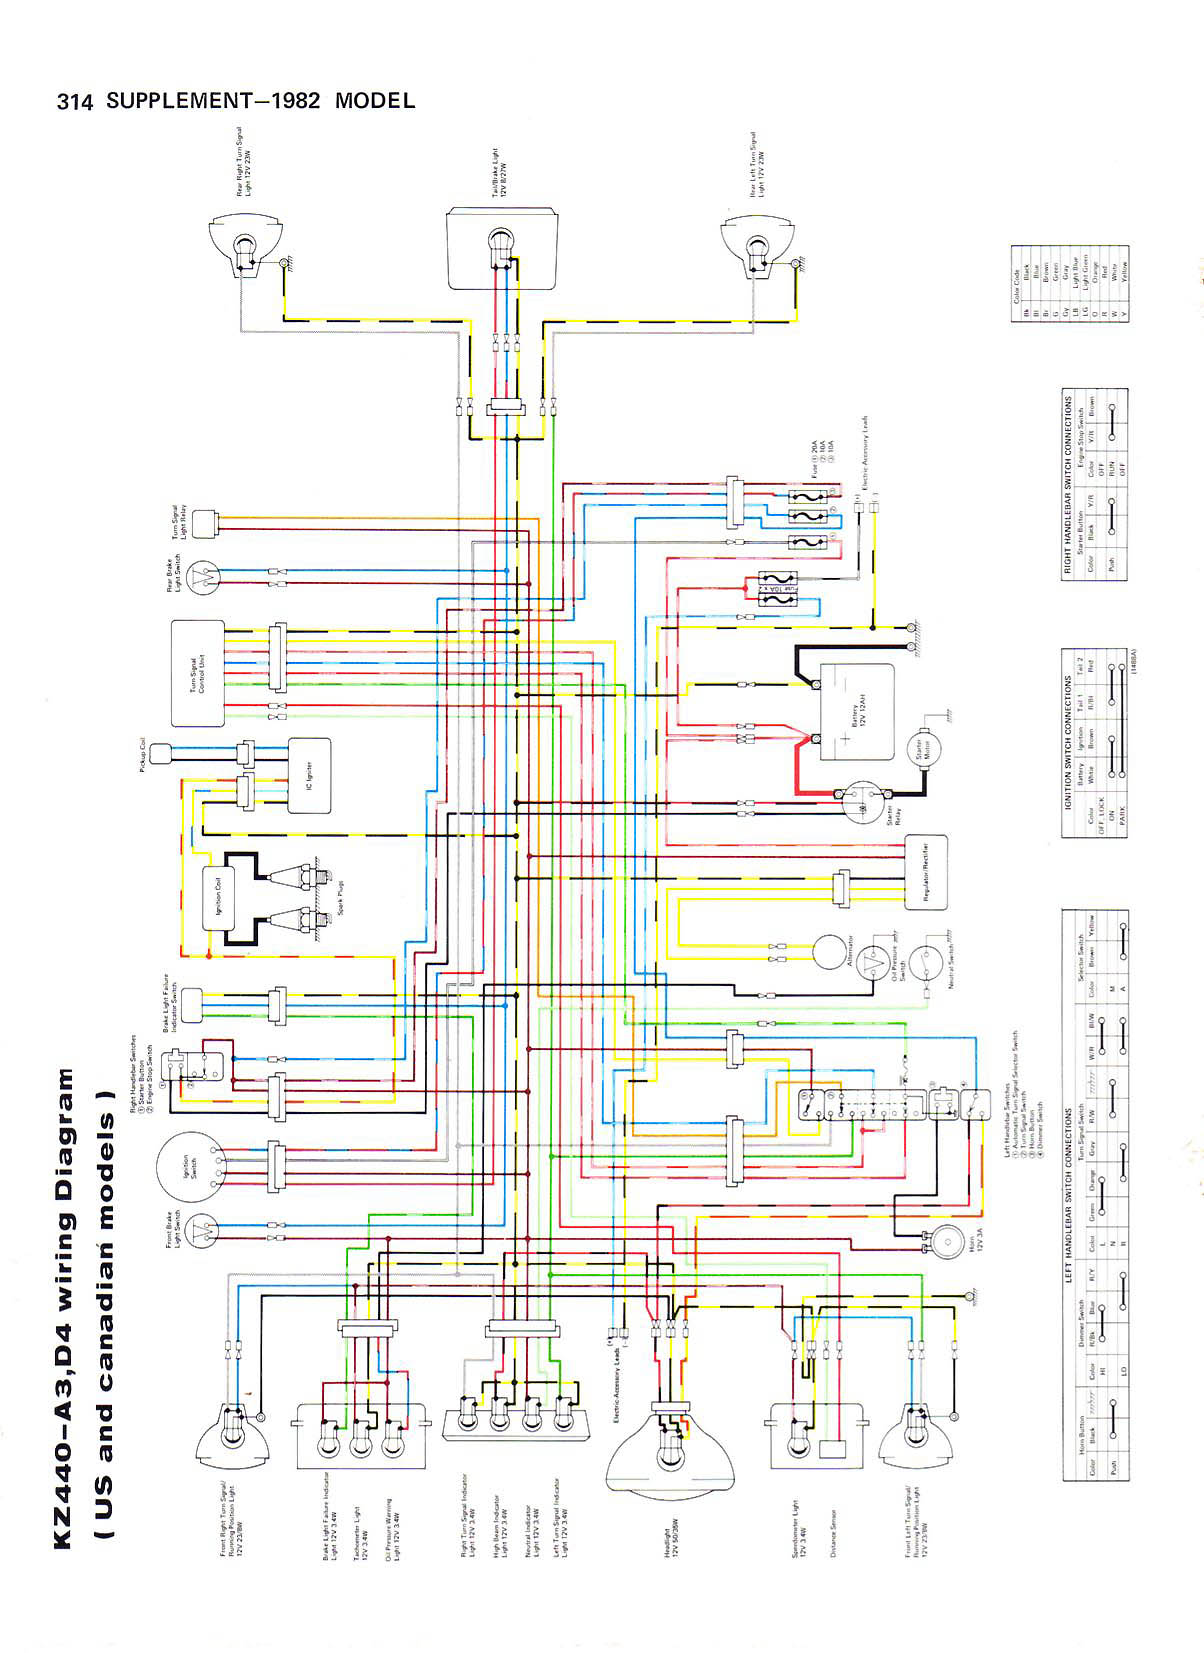 Kawasaki KZ 440 %2780 a %2782 Service Manual_Page_311 index of kz440 wiring diagrams 1981 kawasaki 440 ltd wiring diagram at bayanpartner.co